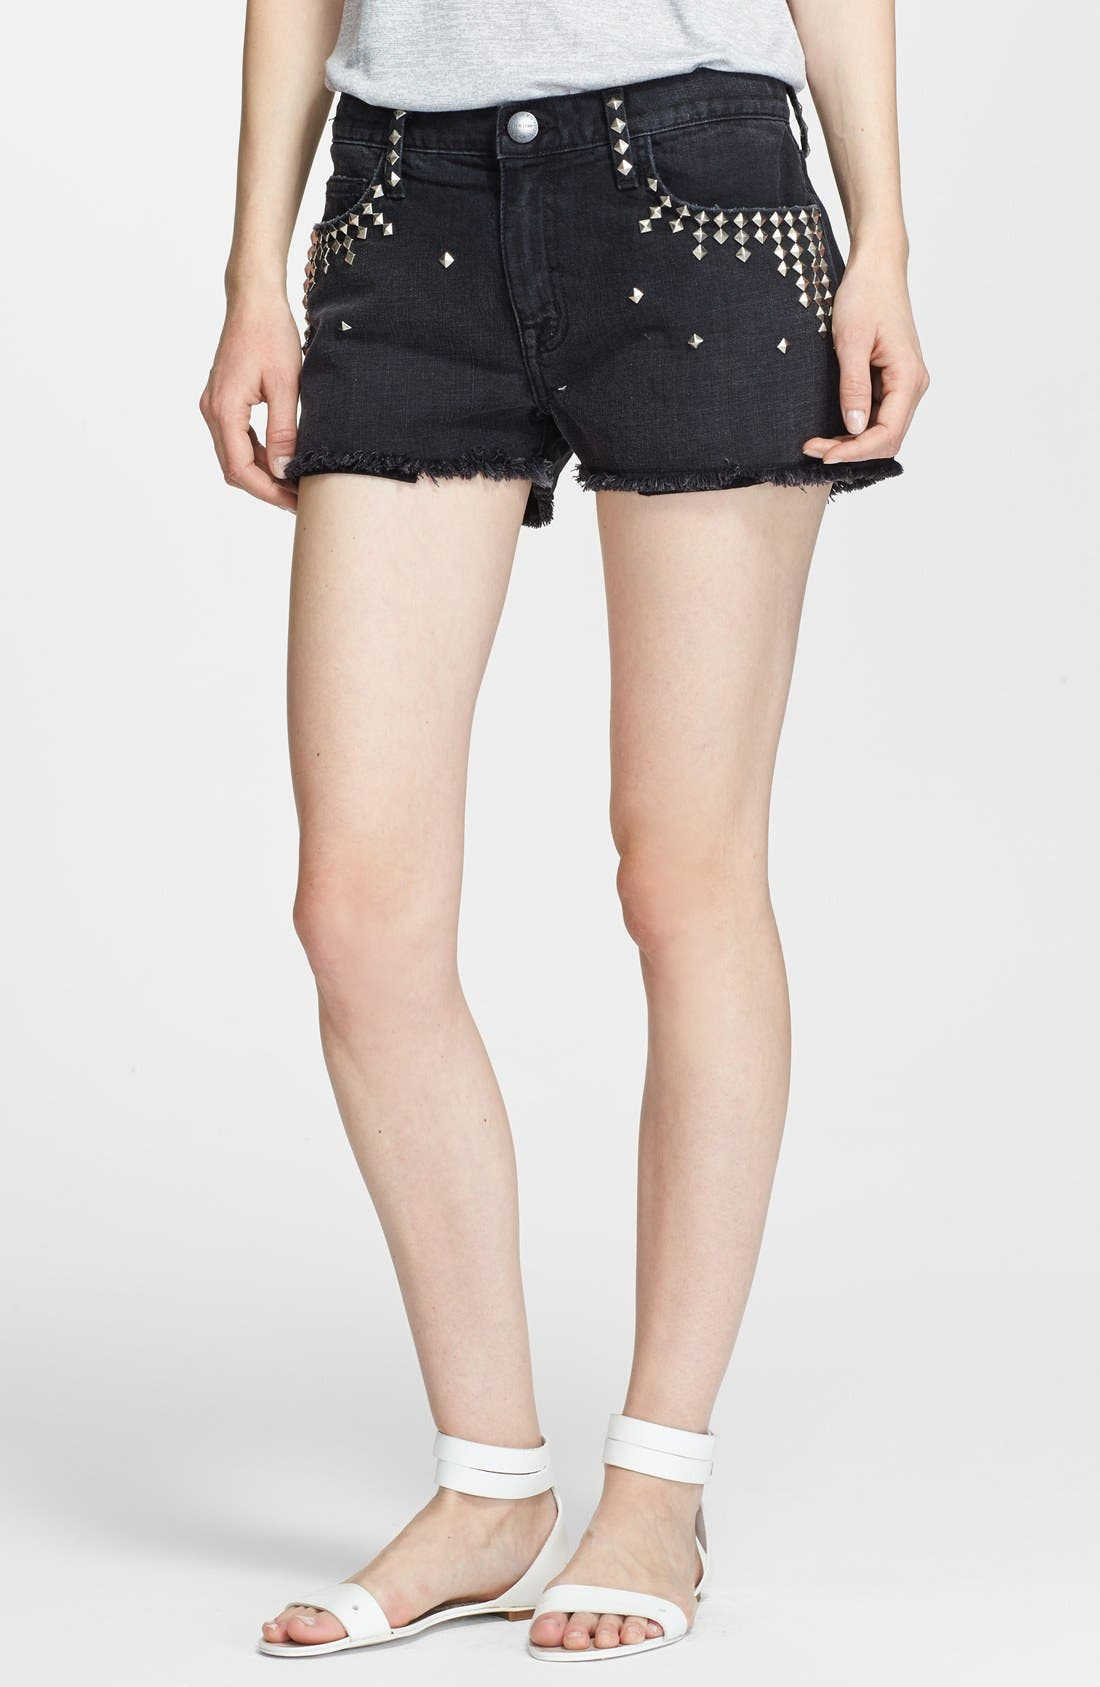 Alternate Image 1 Selected - Current/Elliott 'The Boyfriend' Studded Shorts